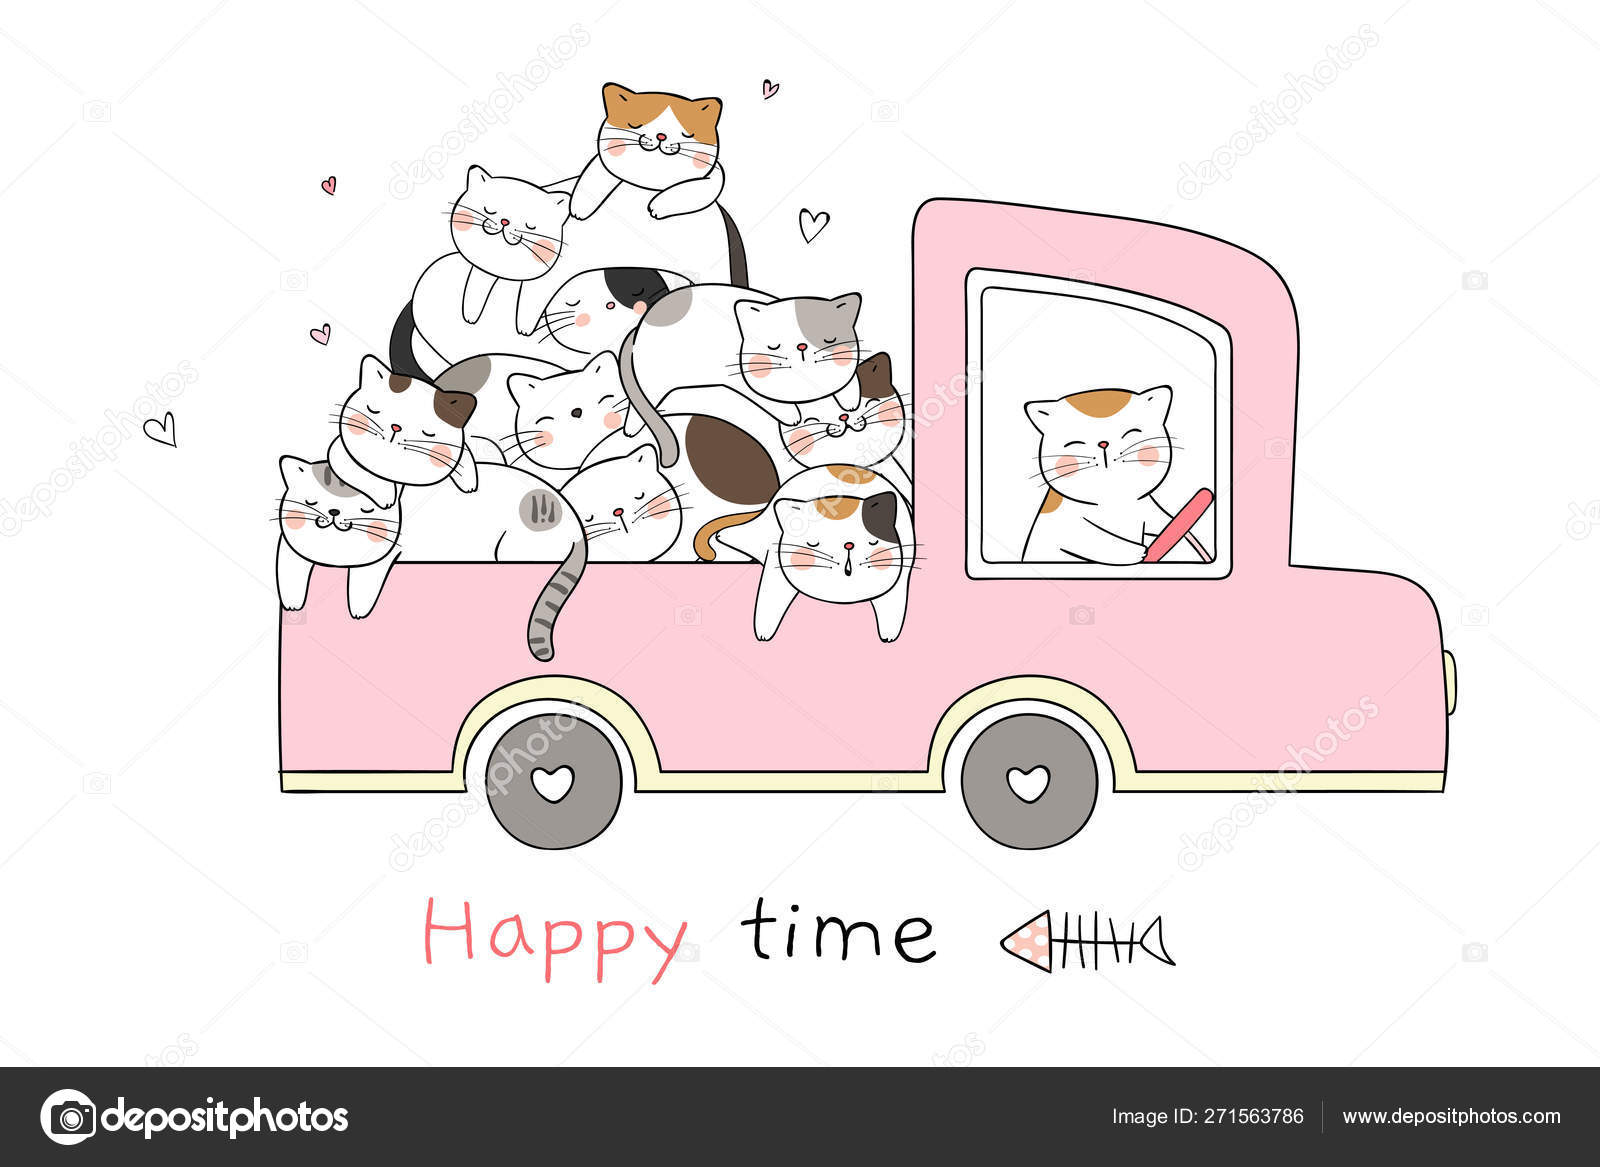 Draw Cute Cats Sleeping Pink Pastel Car Text Happy Time Stock Vector C Anchaleear 271563786